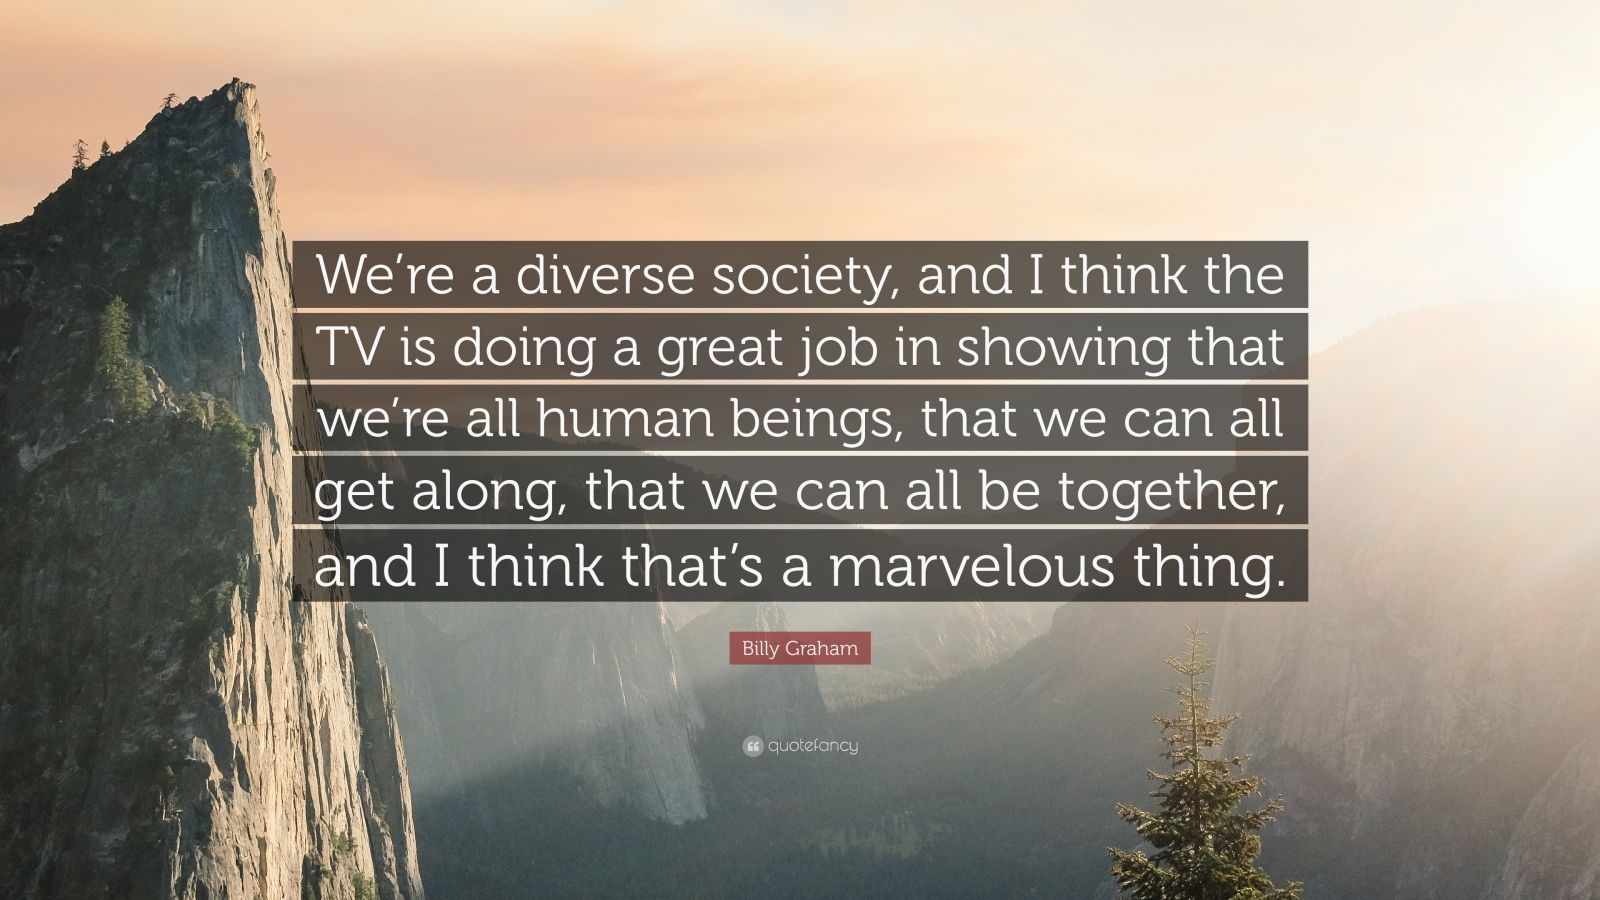 """Billy Graham Quote: """"We're a diverse society, and I think the TV is doing a great job in showing that we're all human beings, that we can all get along, that we can all be together, and I think that's a marvelous thing."""""""